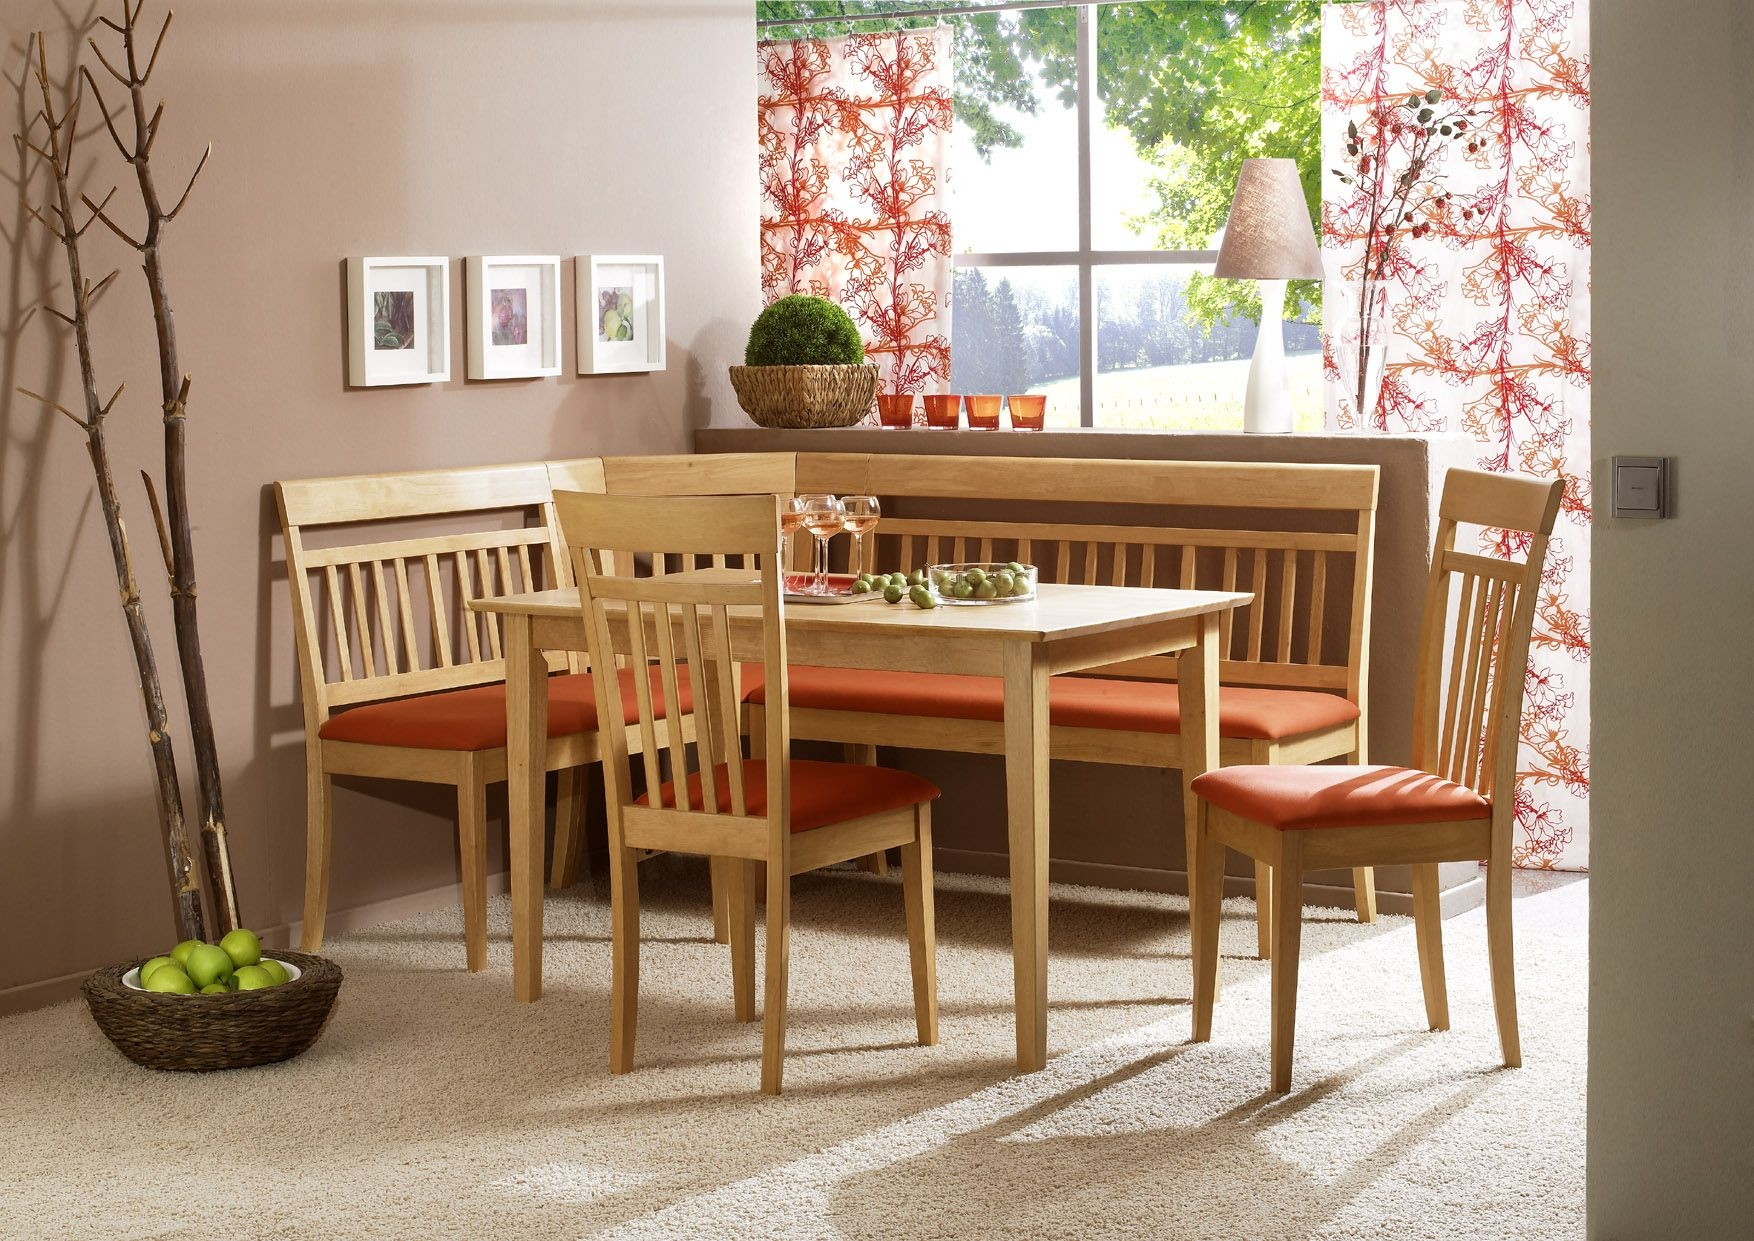 Modern Corner Bench Breakfast Kitchen Nook Dining Set  Ebay